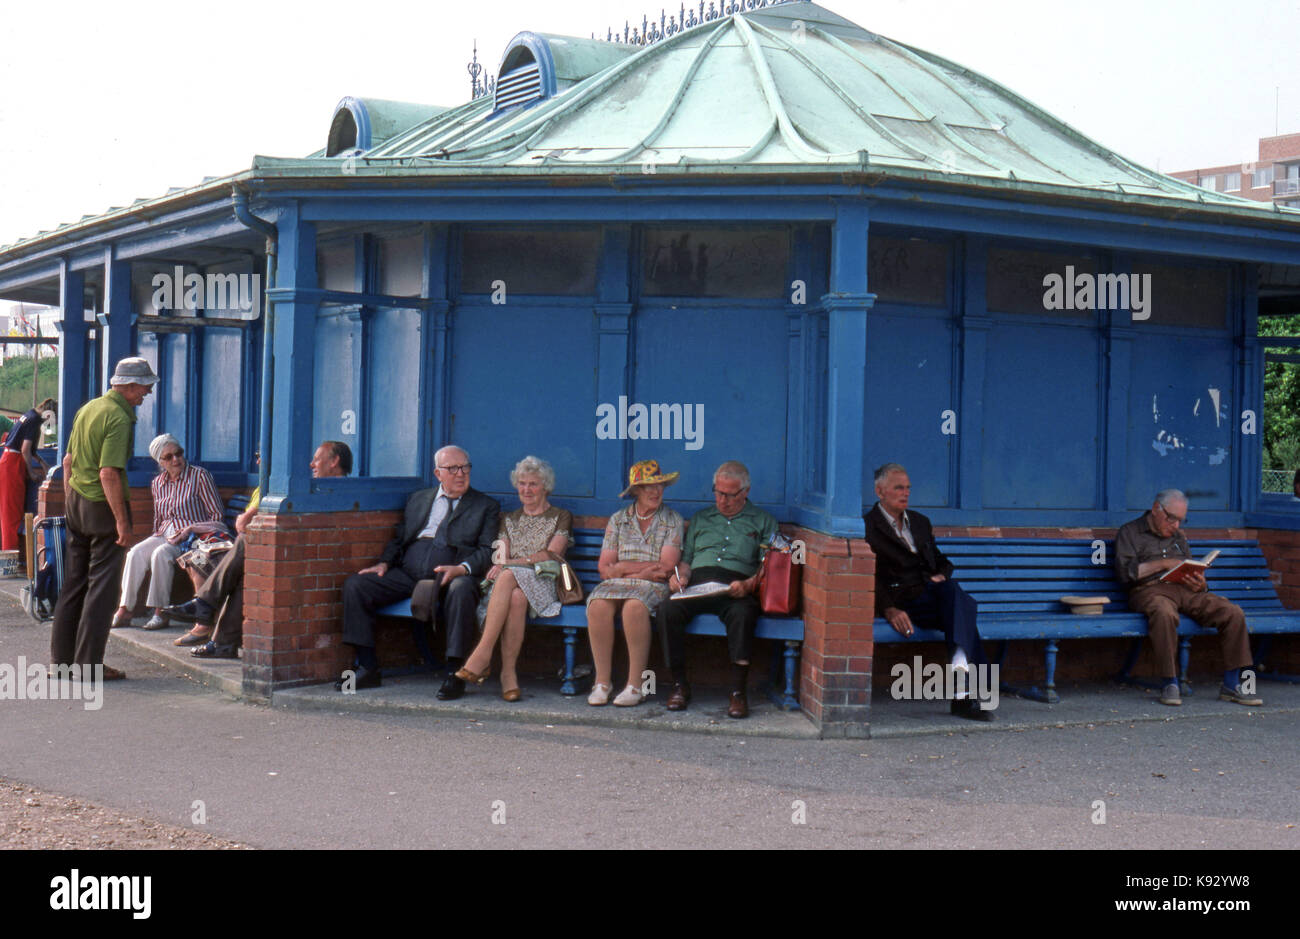 Elderly people at a seaside resort seated in a pavilion enjoying the sea air - Stock Image